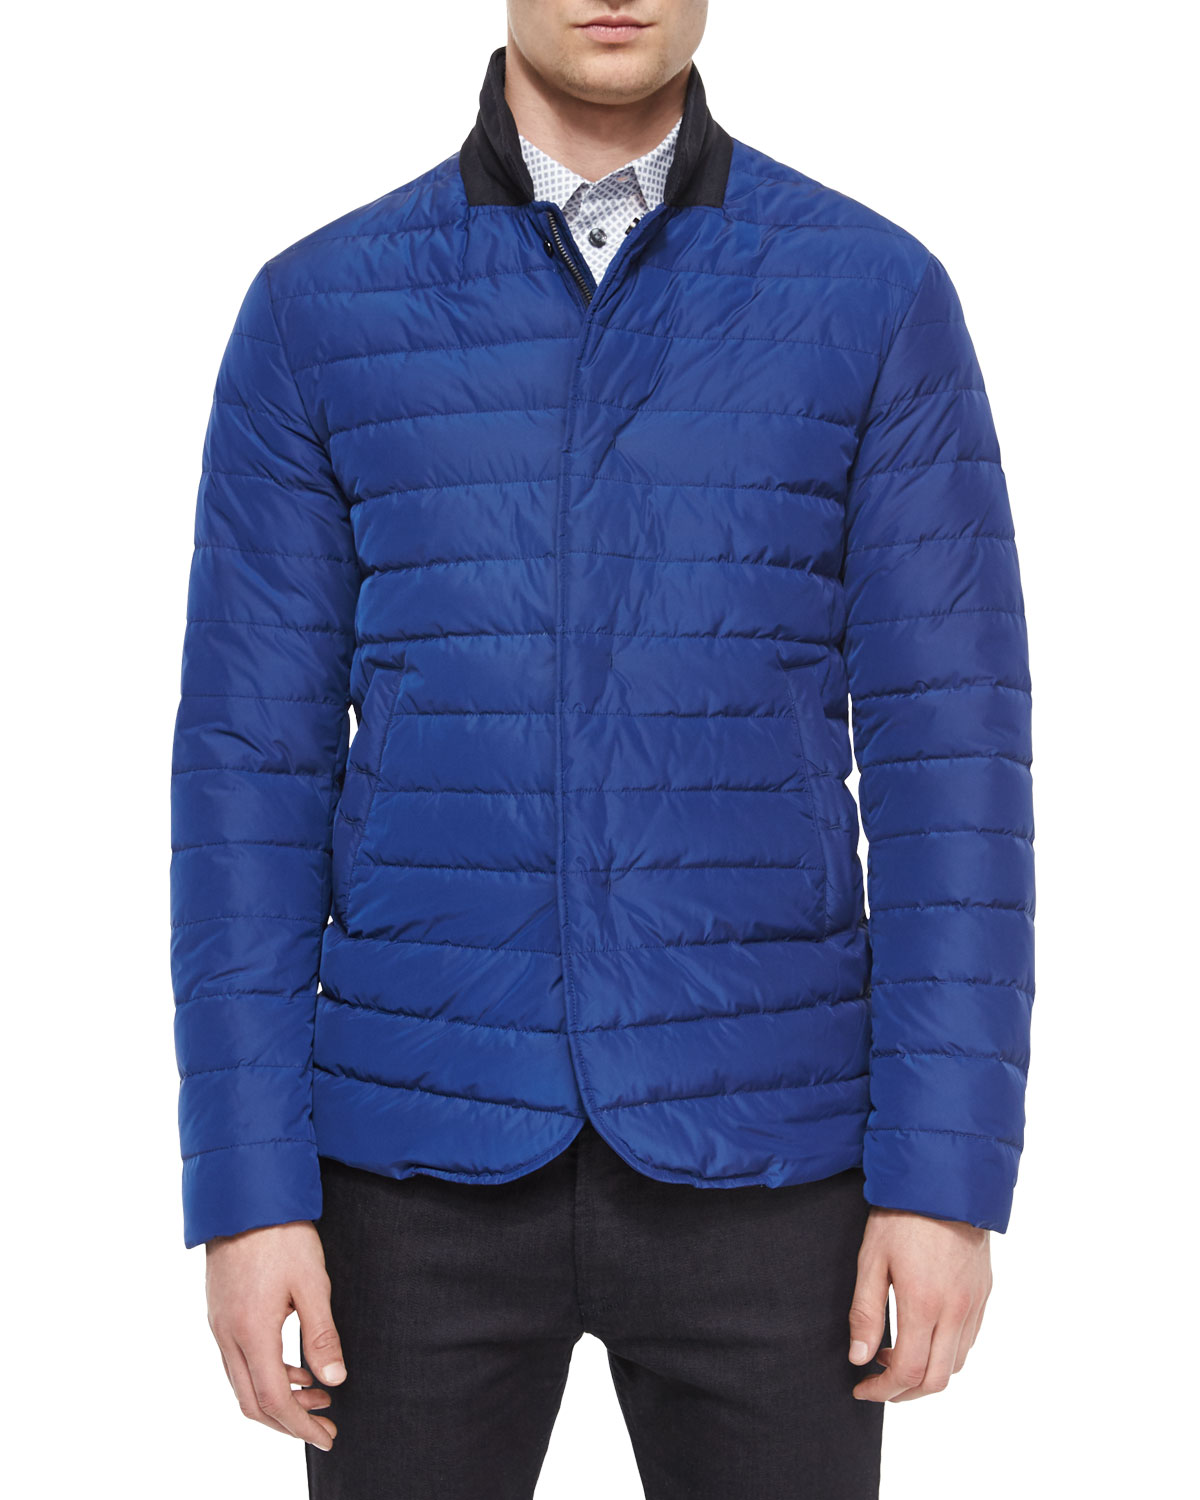 Full-Zip Puffer Jacket, Metallic Blue